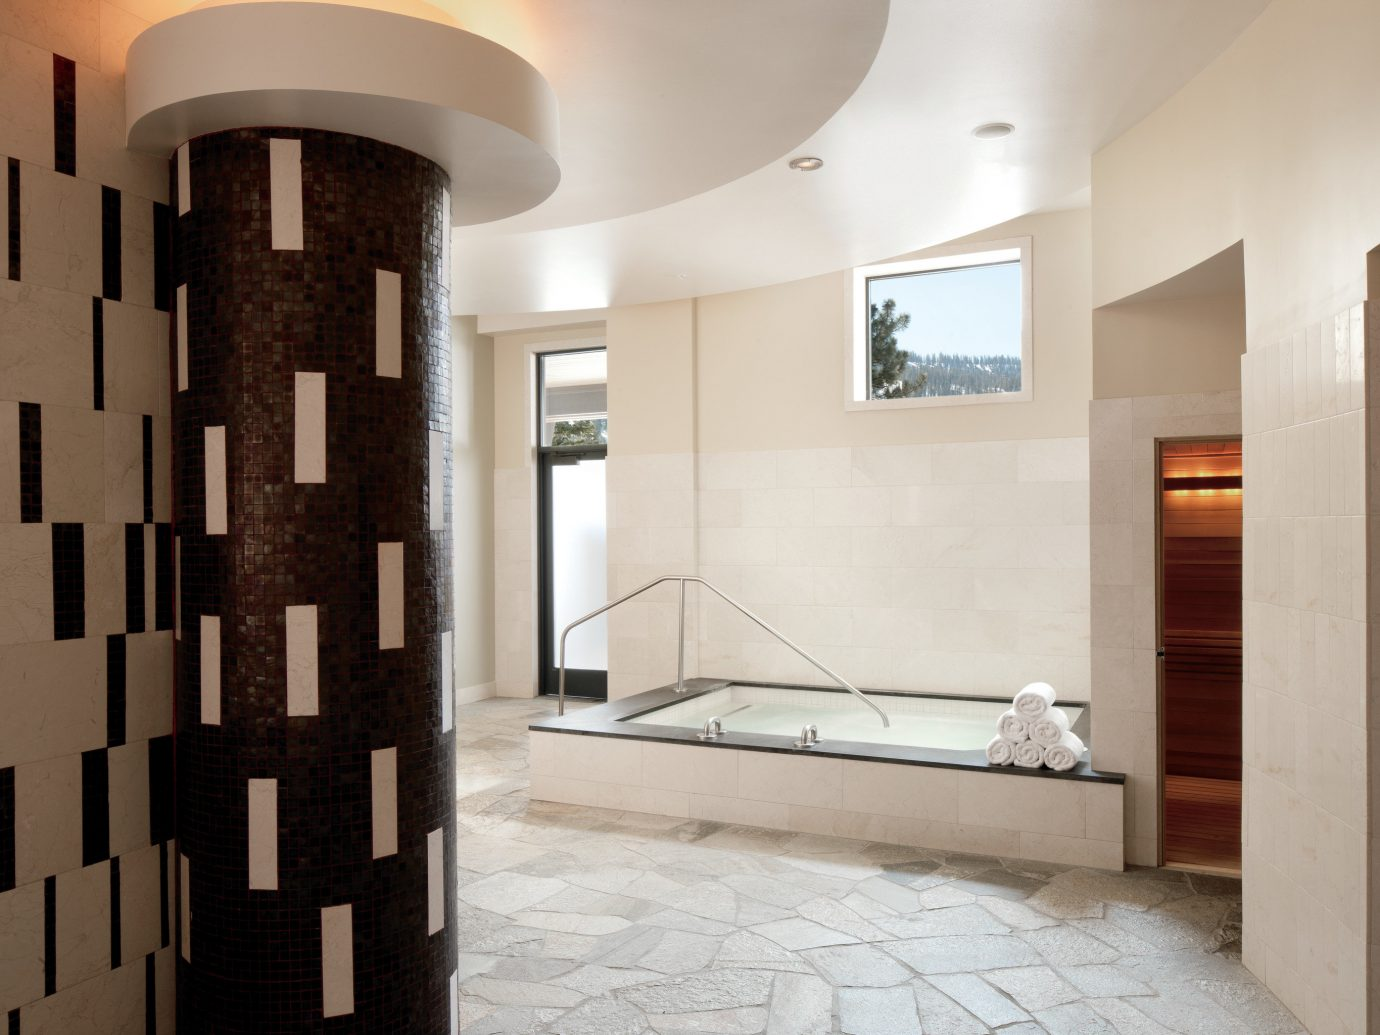 Health + Wellness Spa Retreats Trip Ideas indoor wall ceiling property room building floor Architecture interior design estate home flooring Design living room hall apartment loft tile stone tiled